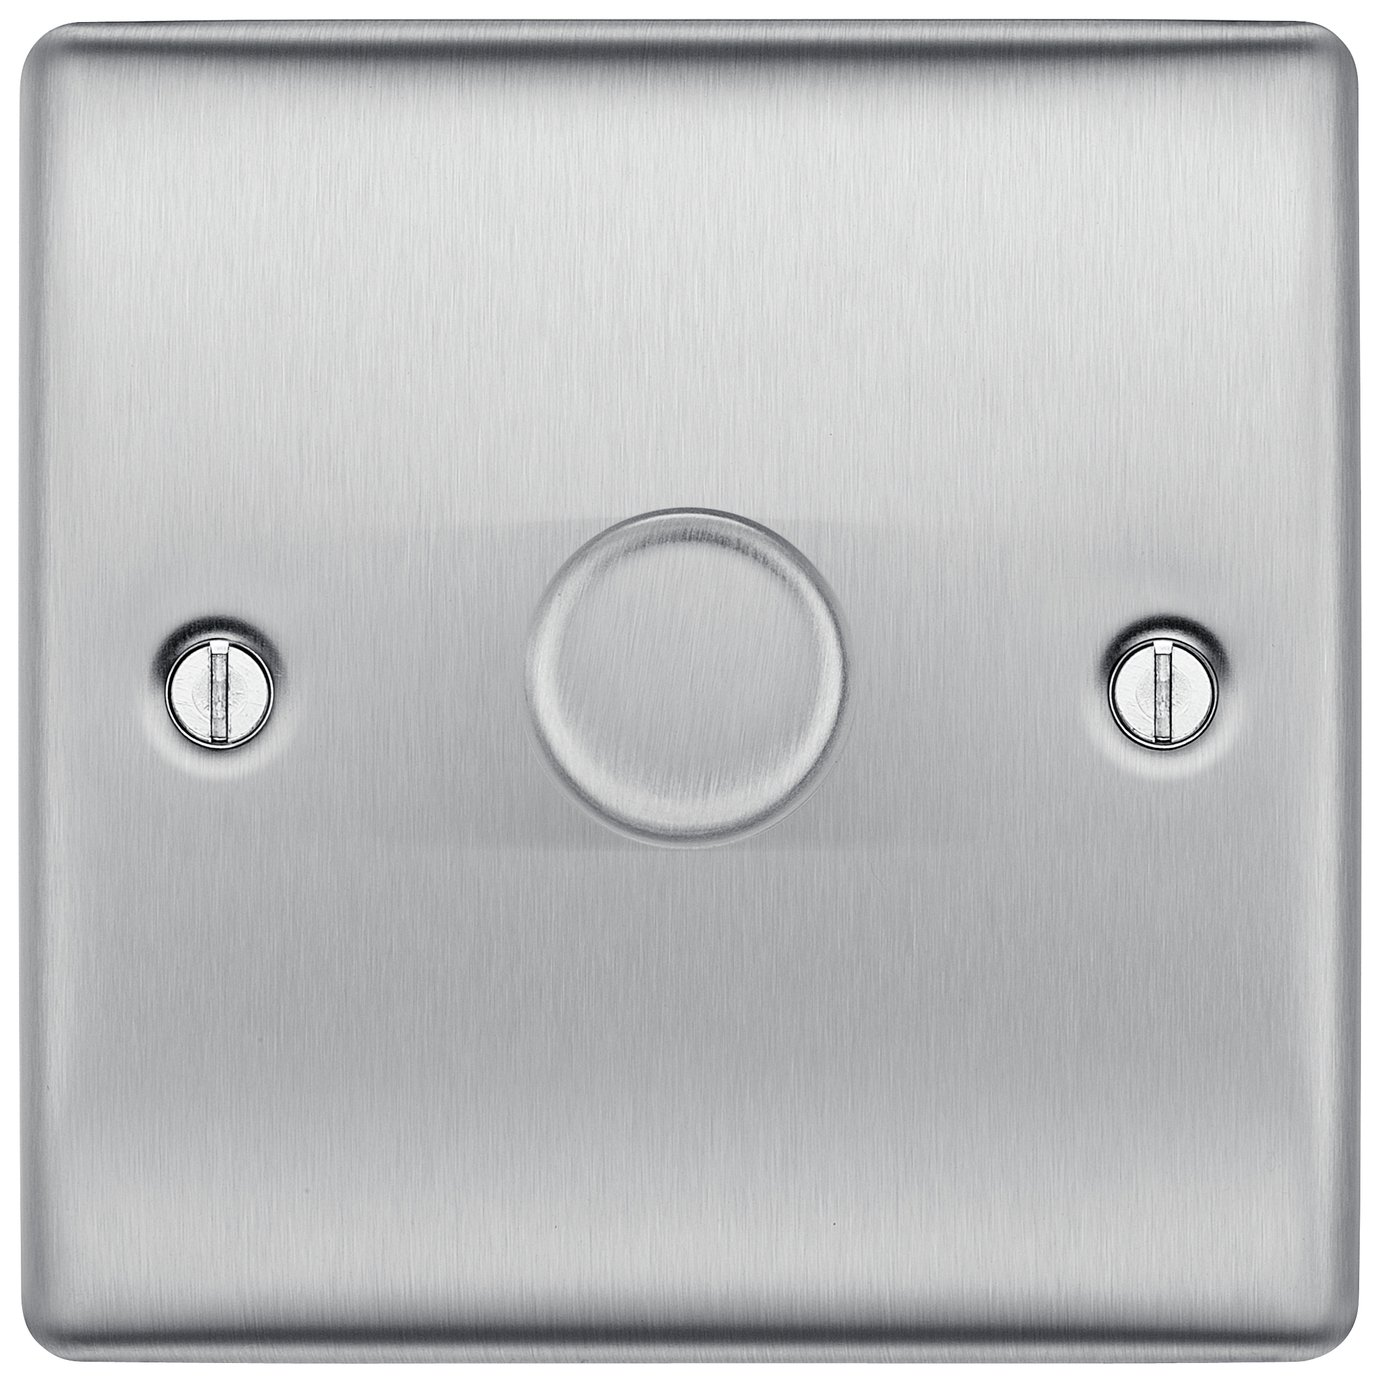 BG Single 2 Way Dimmer Switch - Brushed Stainless Steel